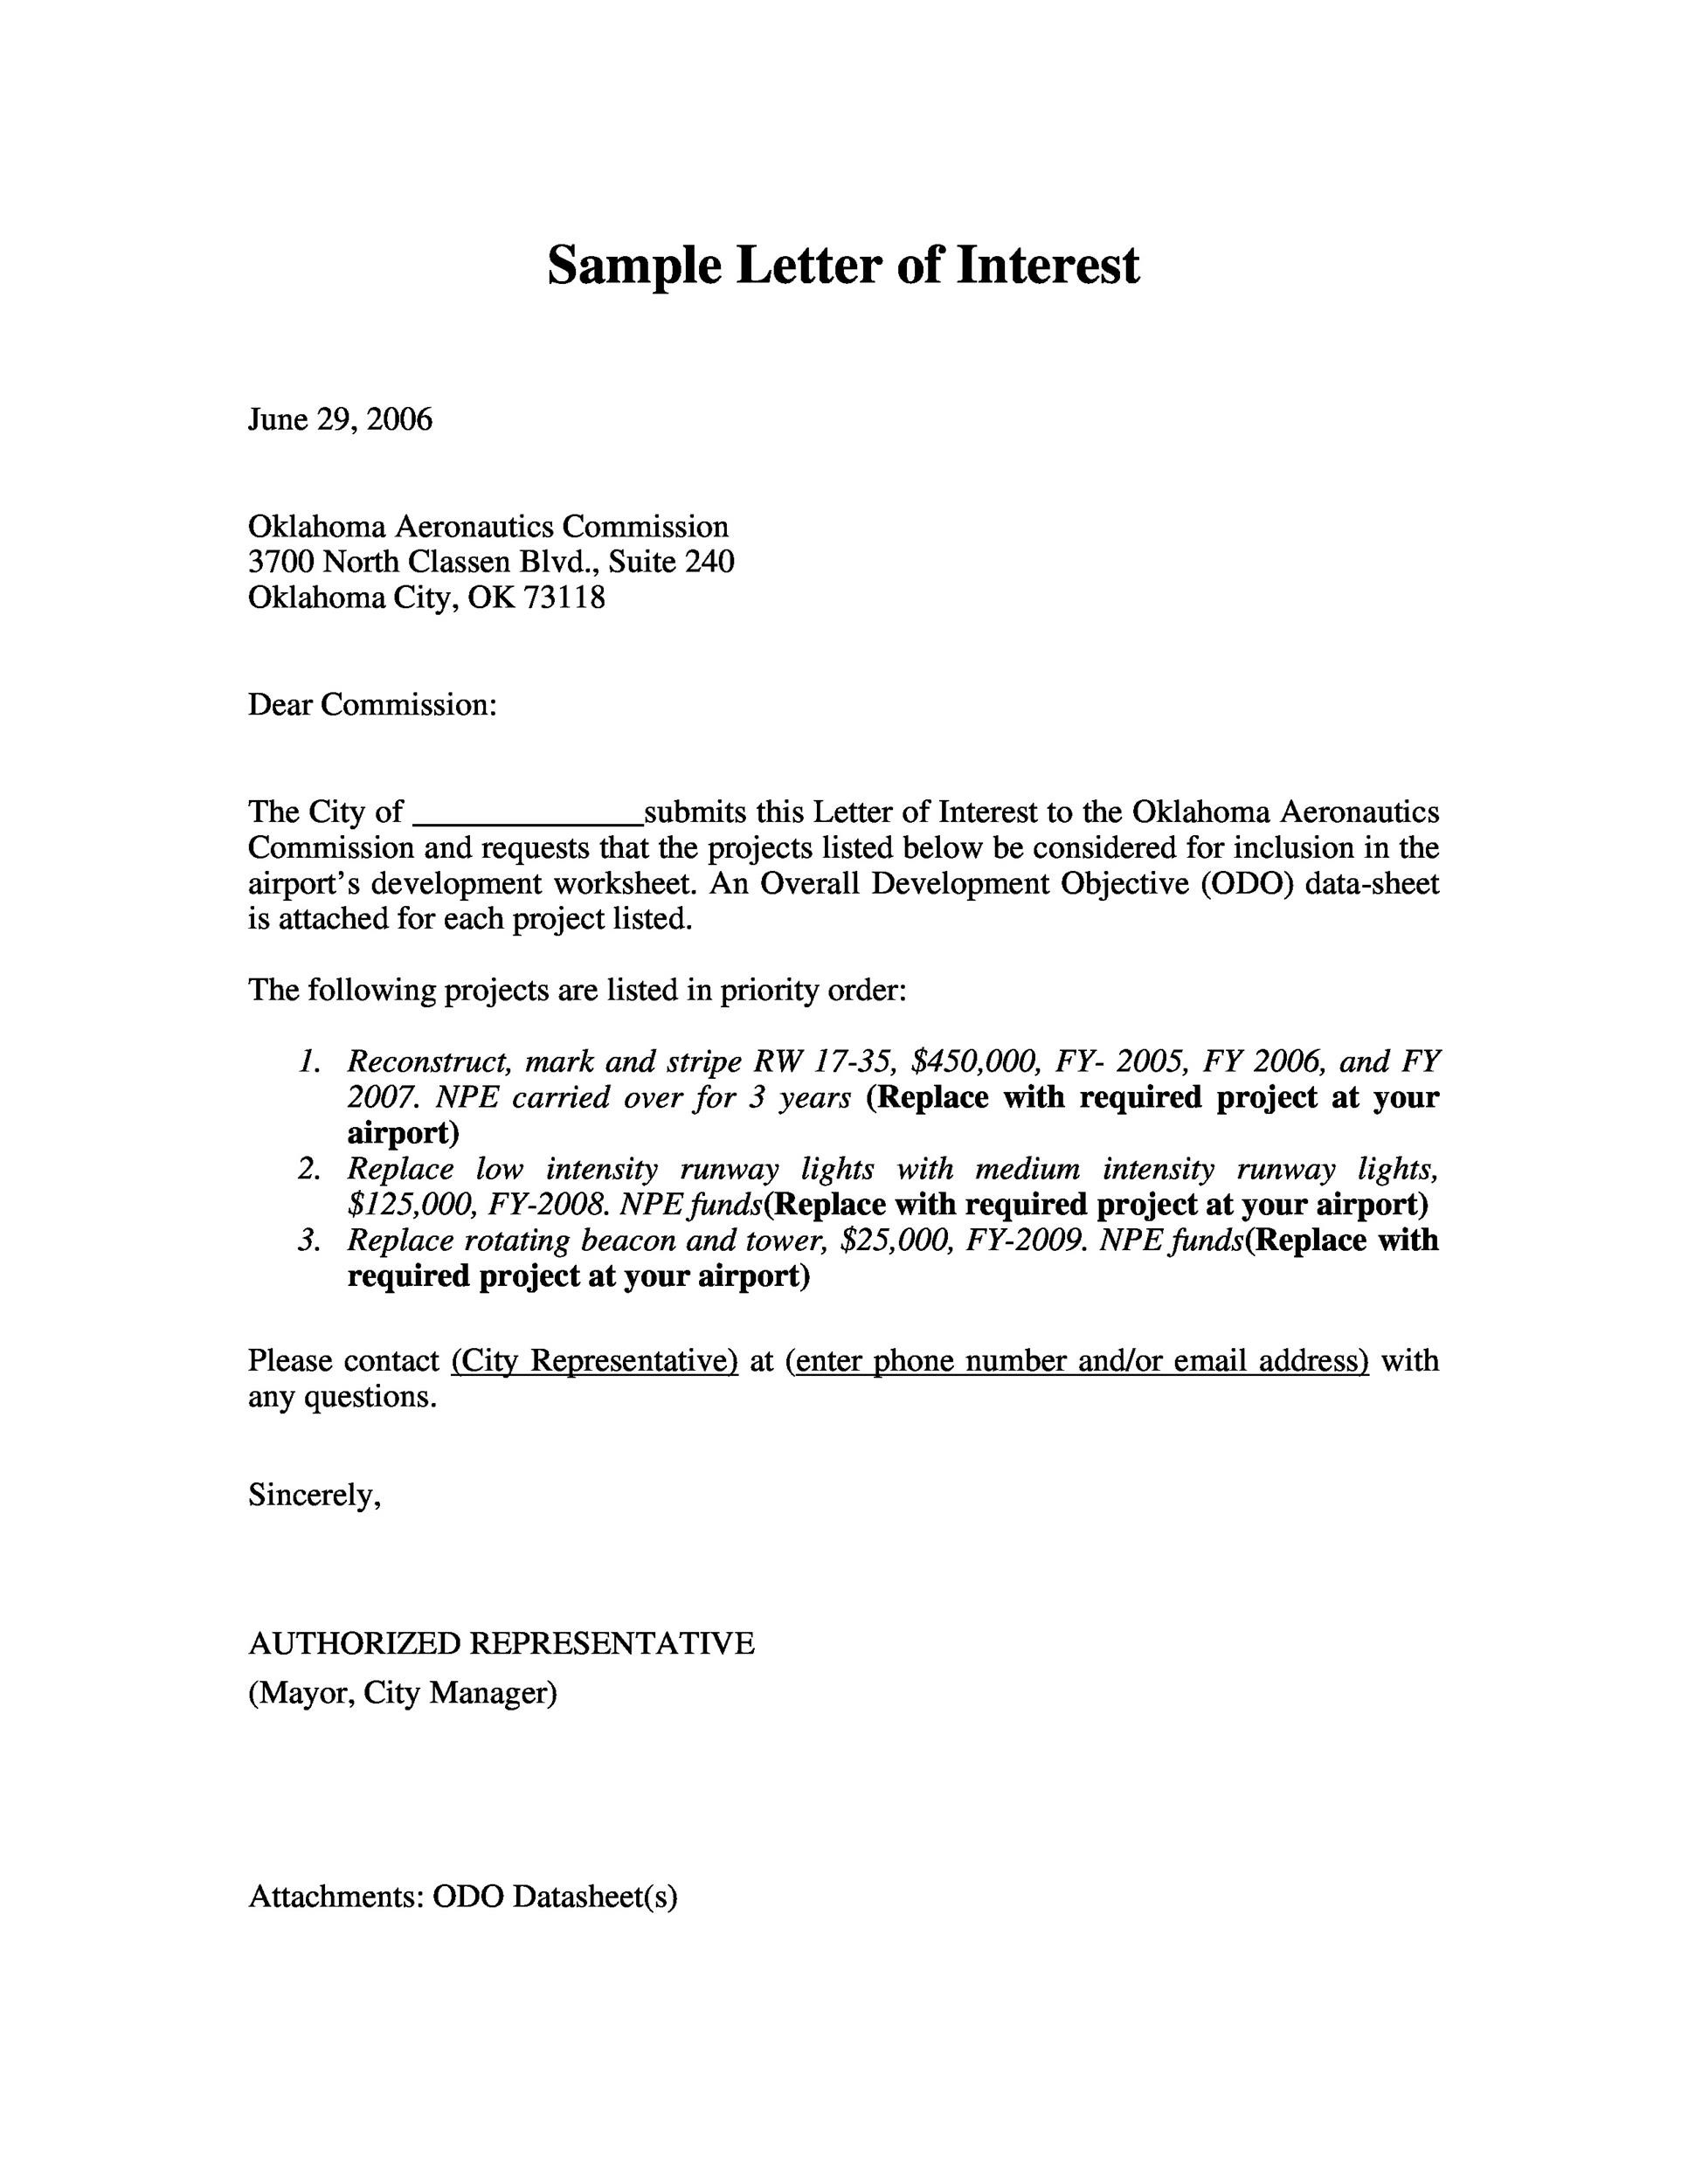 Delightful Printable Letter Of Interest 26 On Sample Letter Of Interest